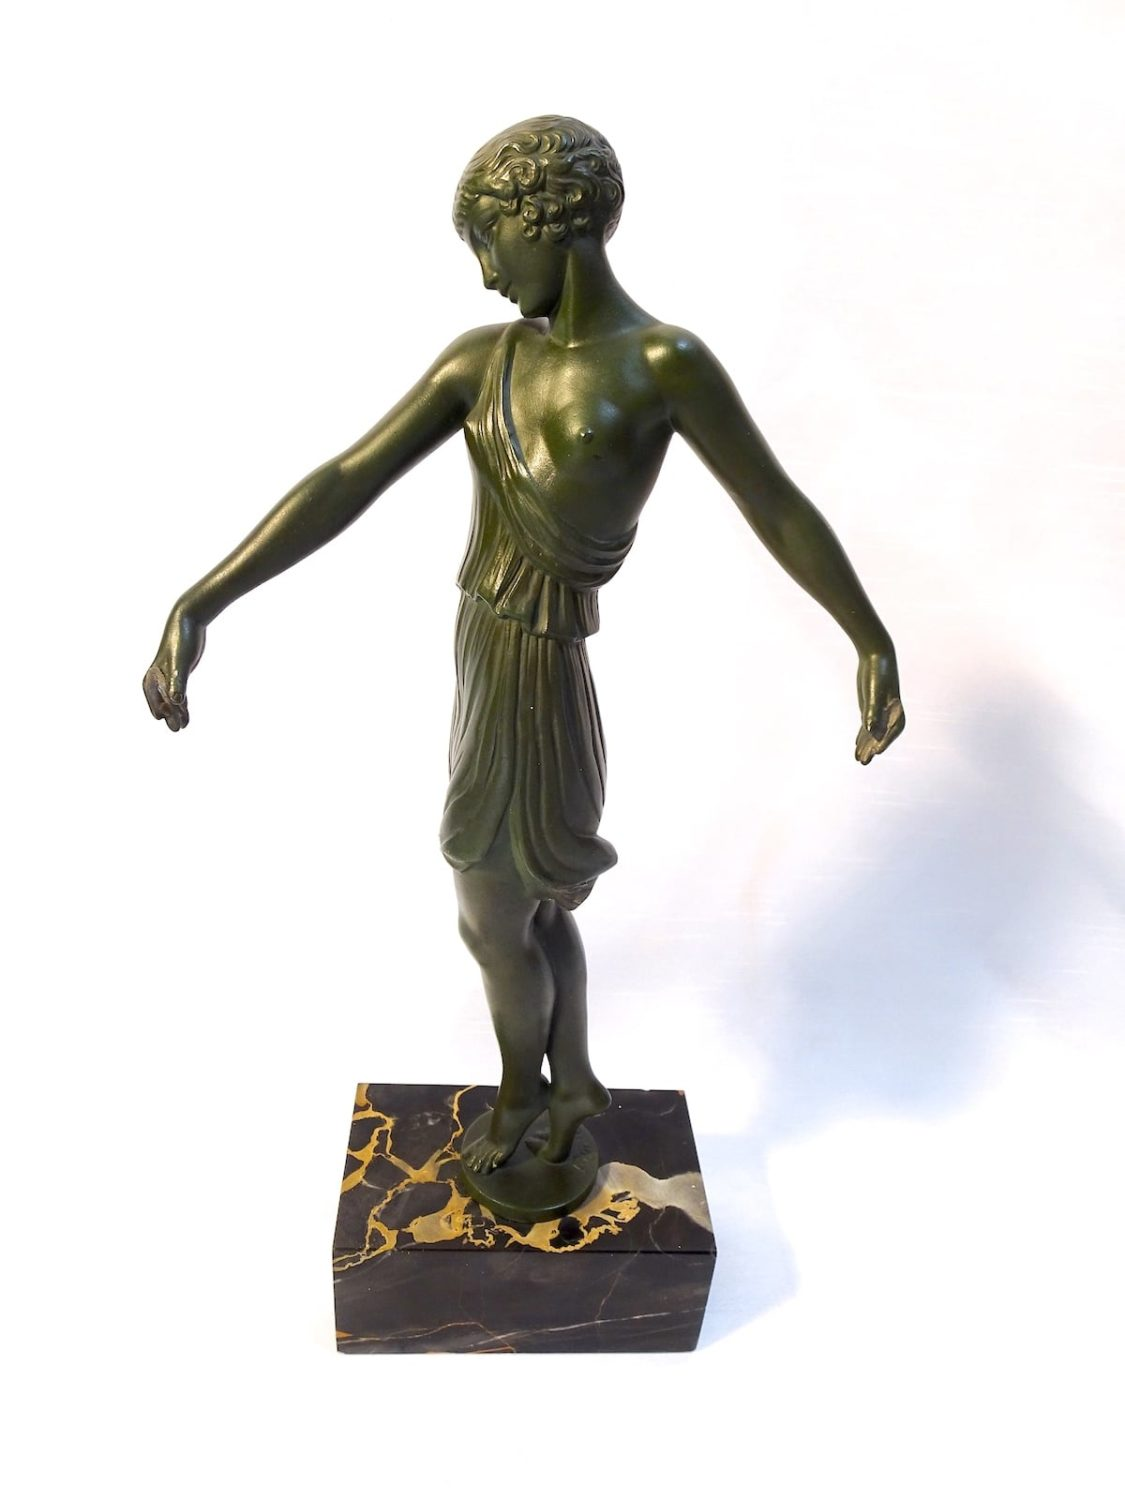 Fayral (Pierre le Faguays) Max le Verrier - Bronze figure of a dancing lady